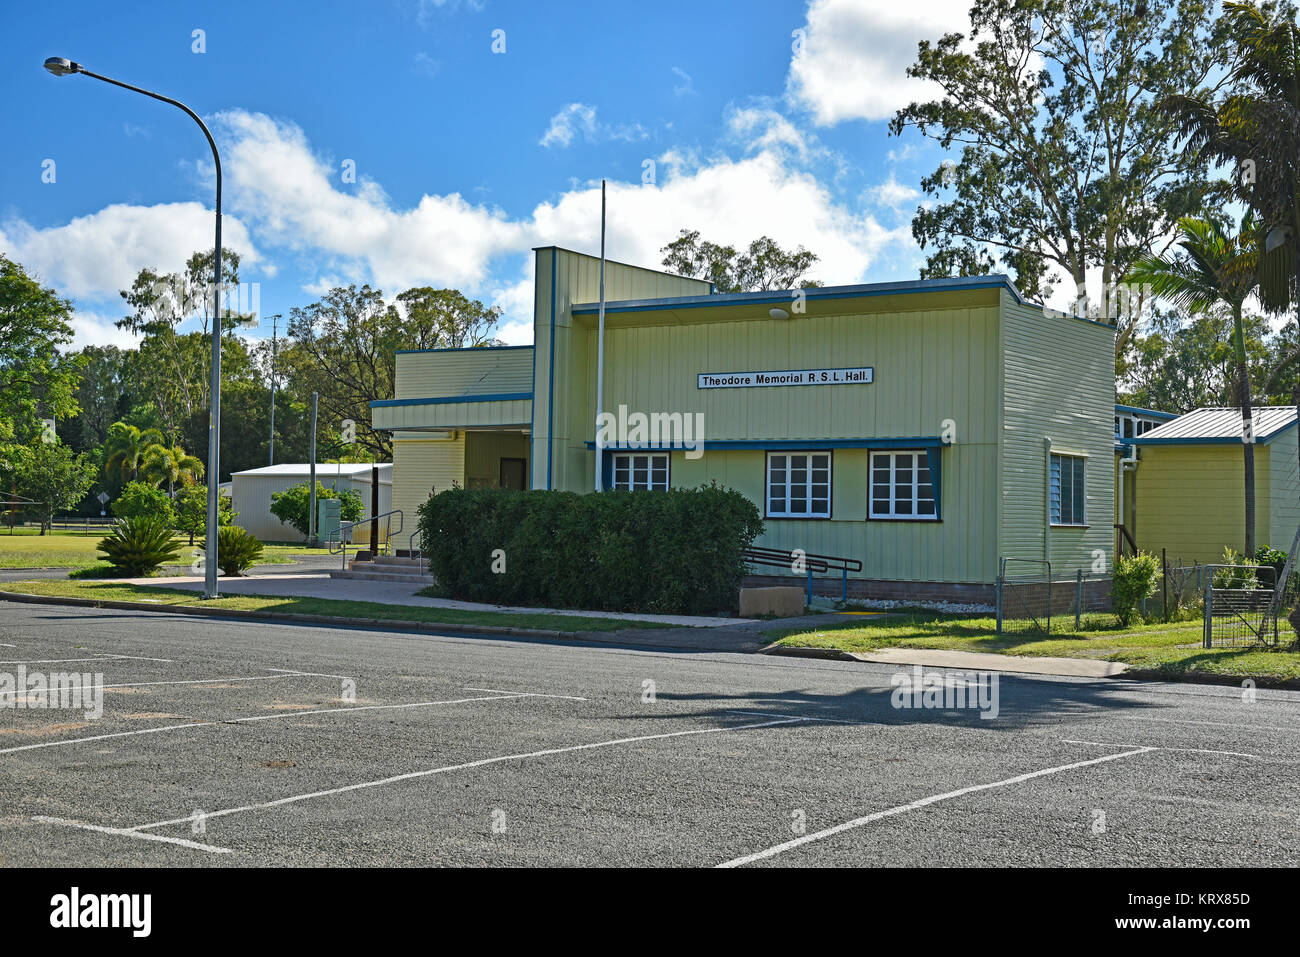 Theodore memorial rsl club and hall in theodore in north queensland in australia - Stock Image